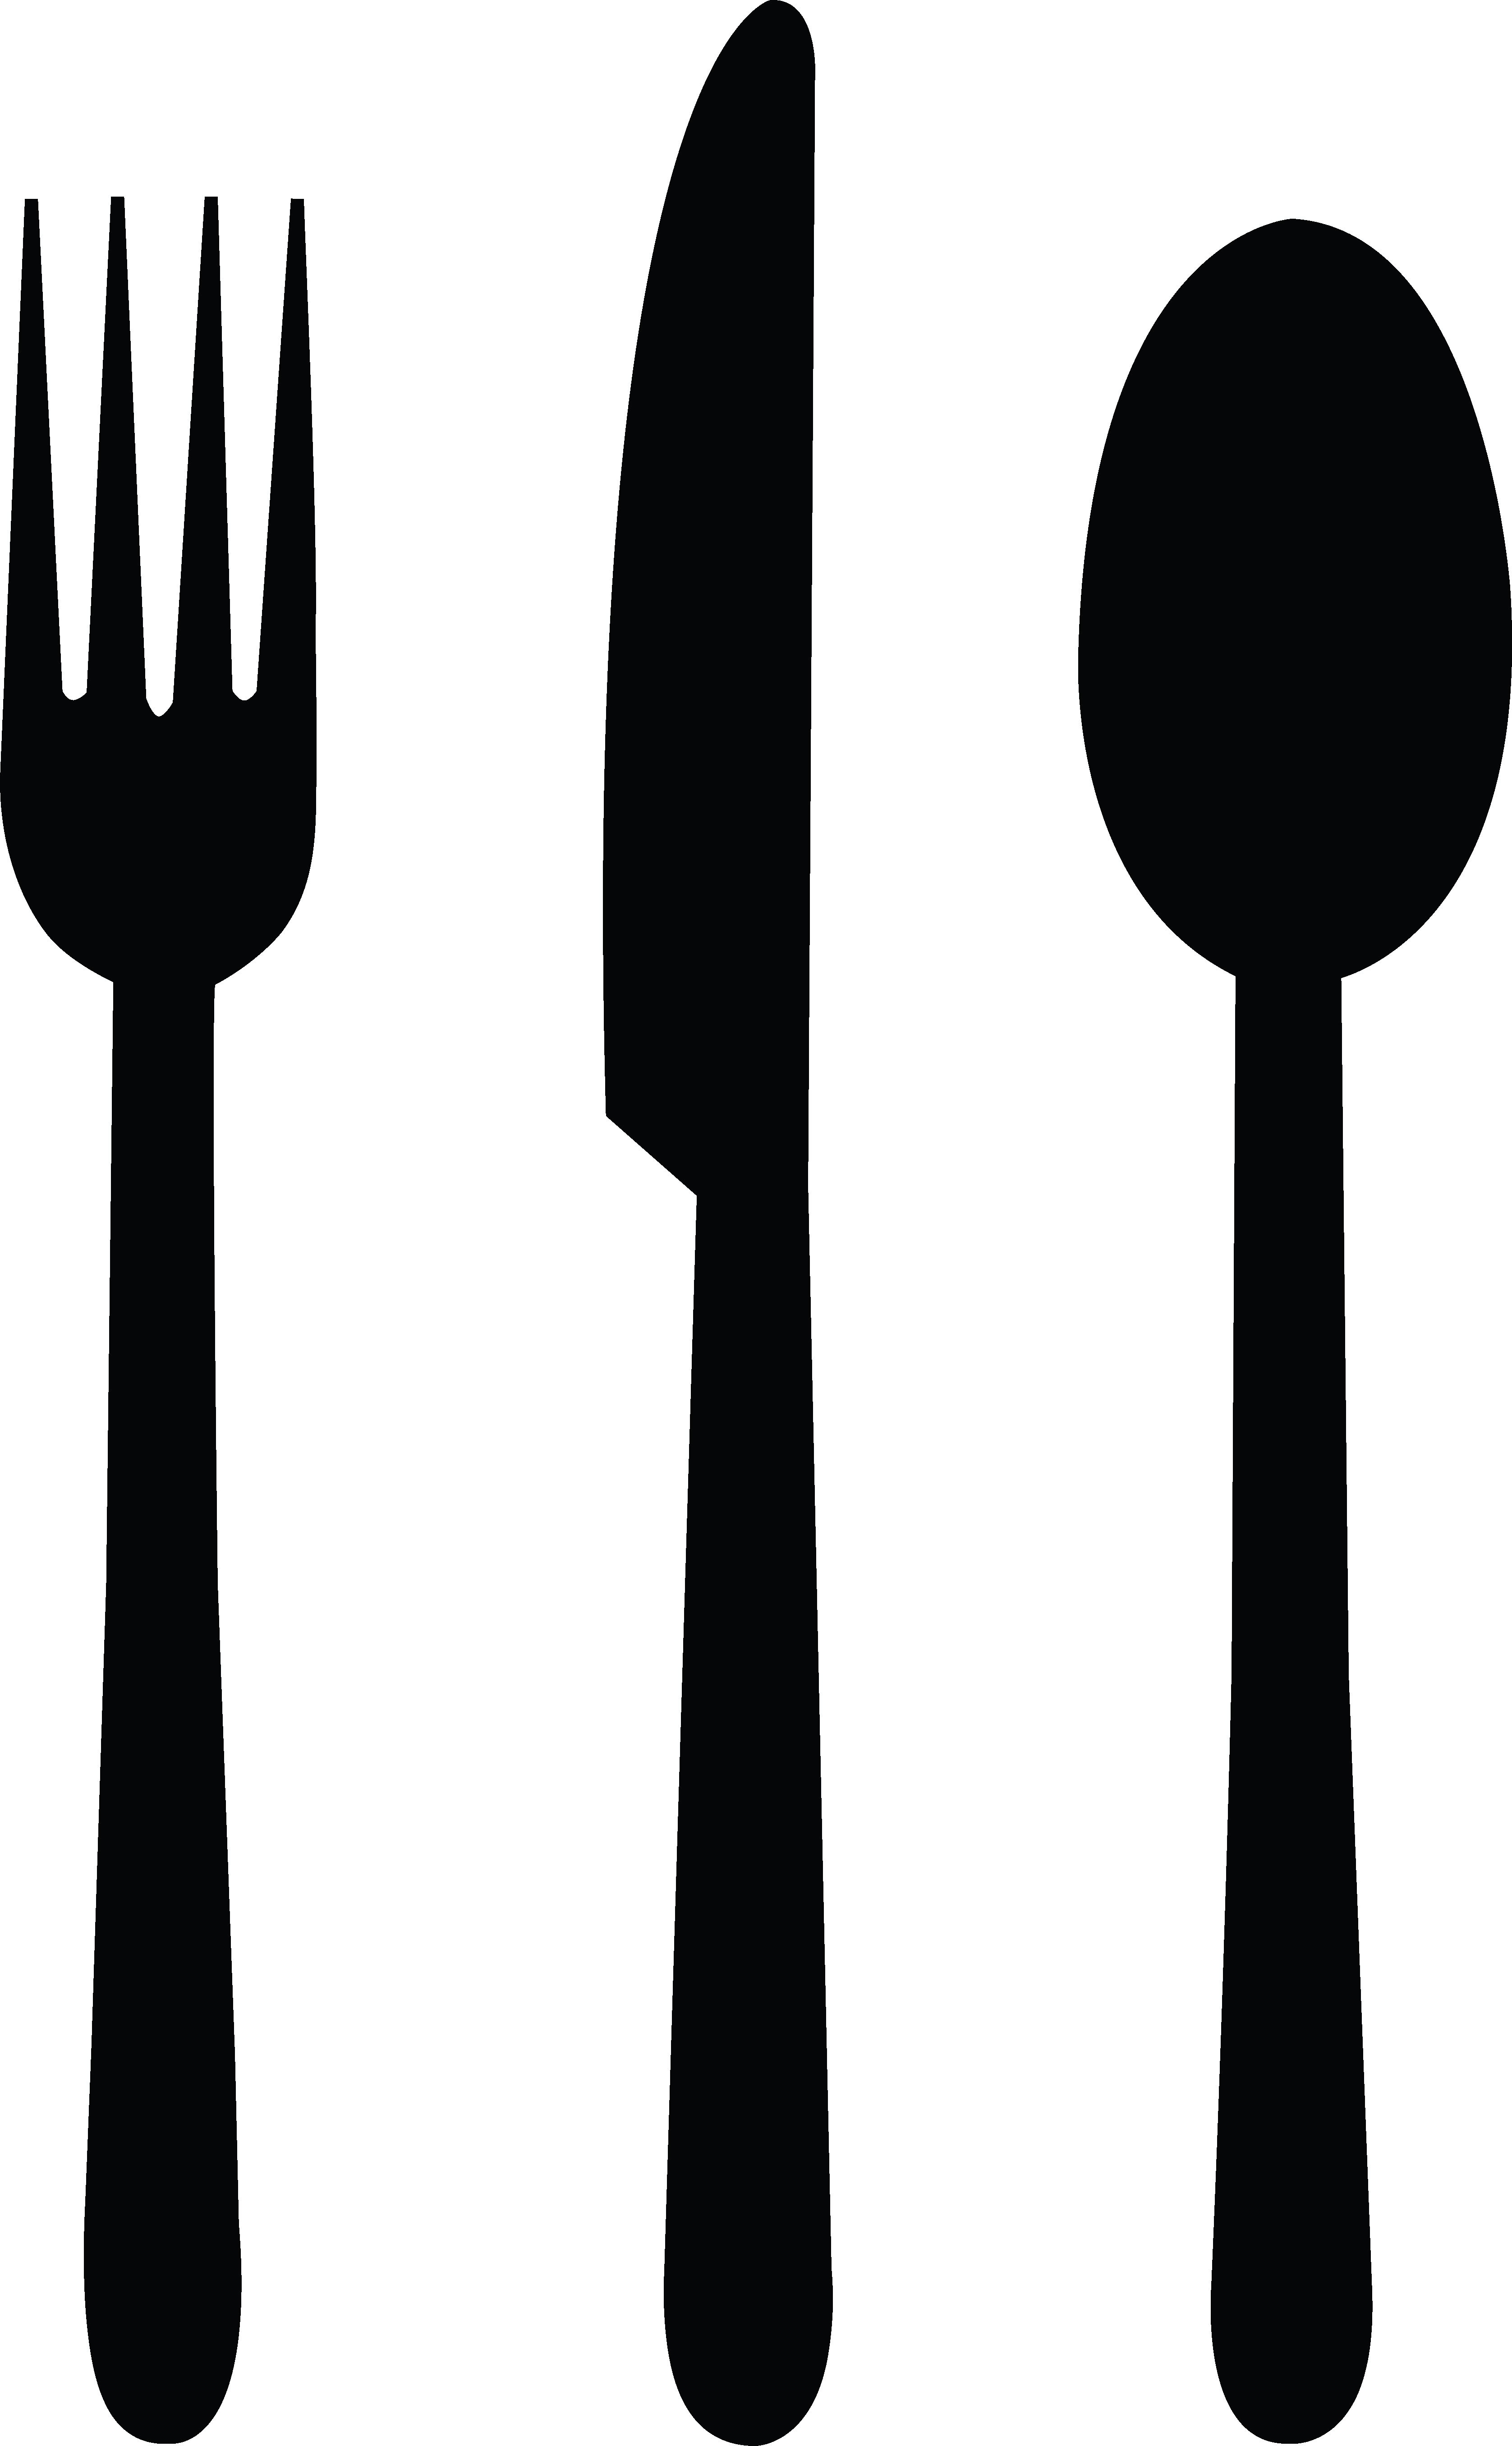 Fork Knife Spoon Black Png image #3660